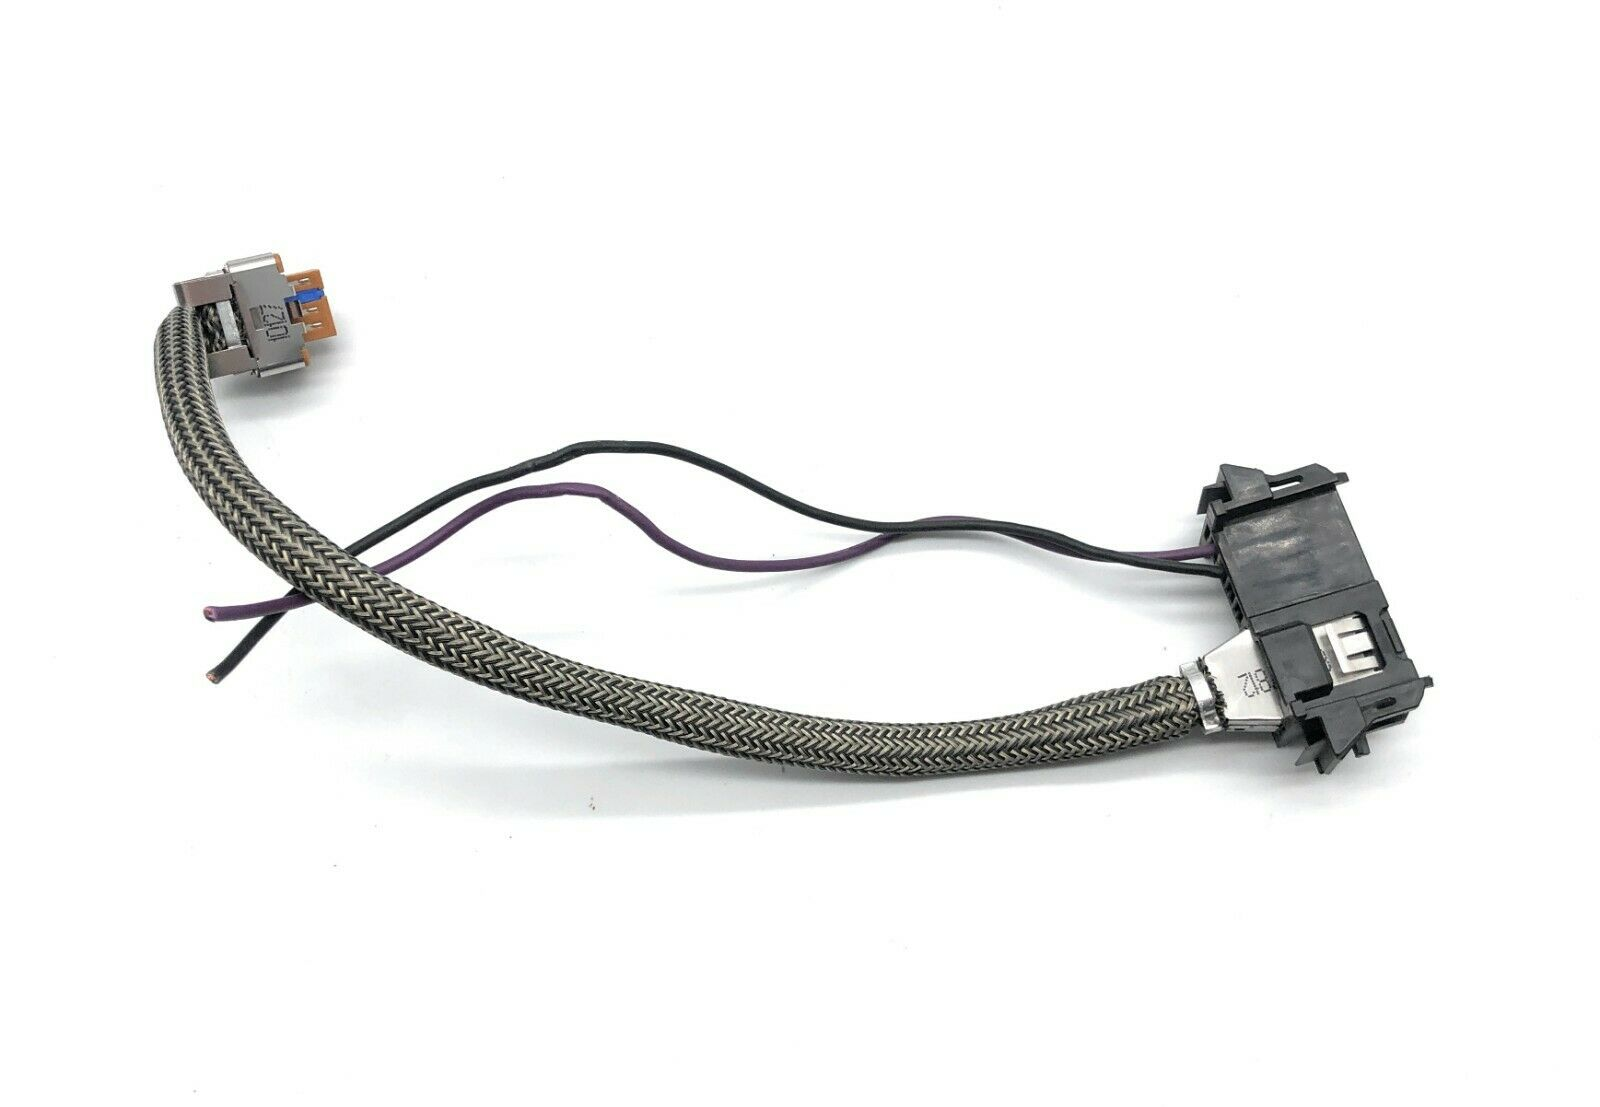 Genuine Oem Valeo 6g Xenon Headlight Ballast Wiring Harness Wire Cadillac Cts Plug Connector 1 Of 3only 5 Available See More